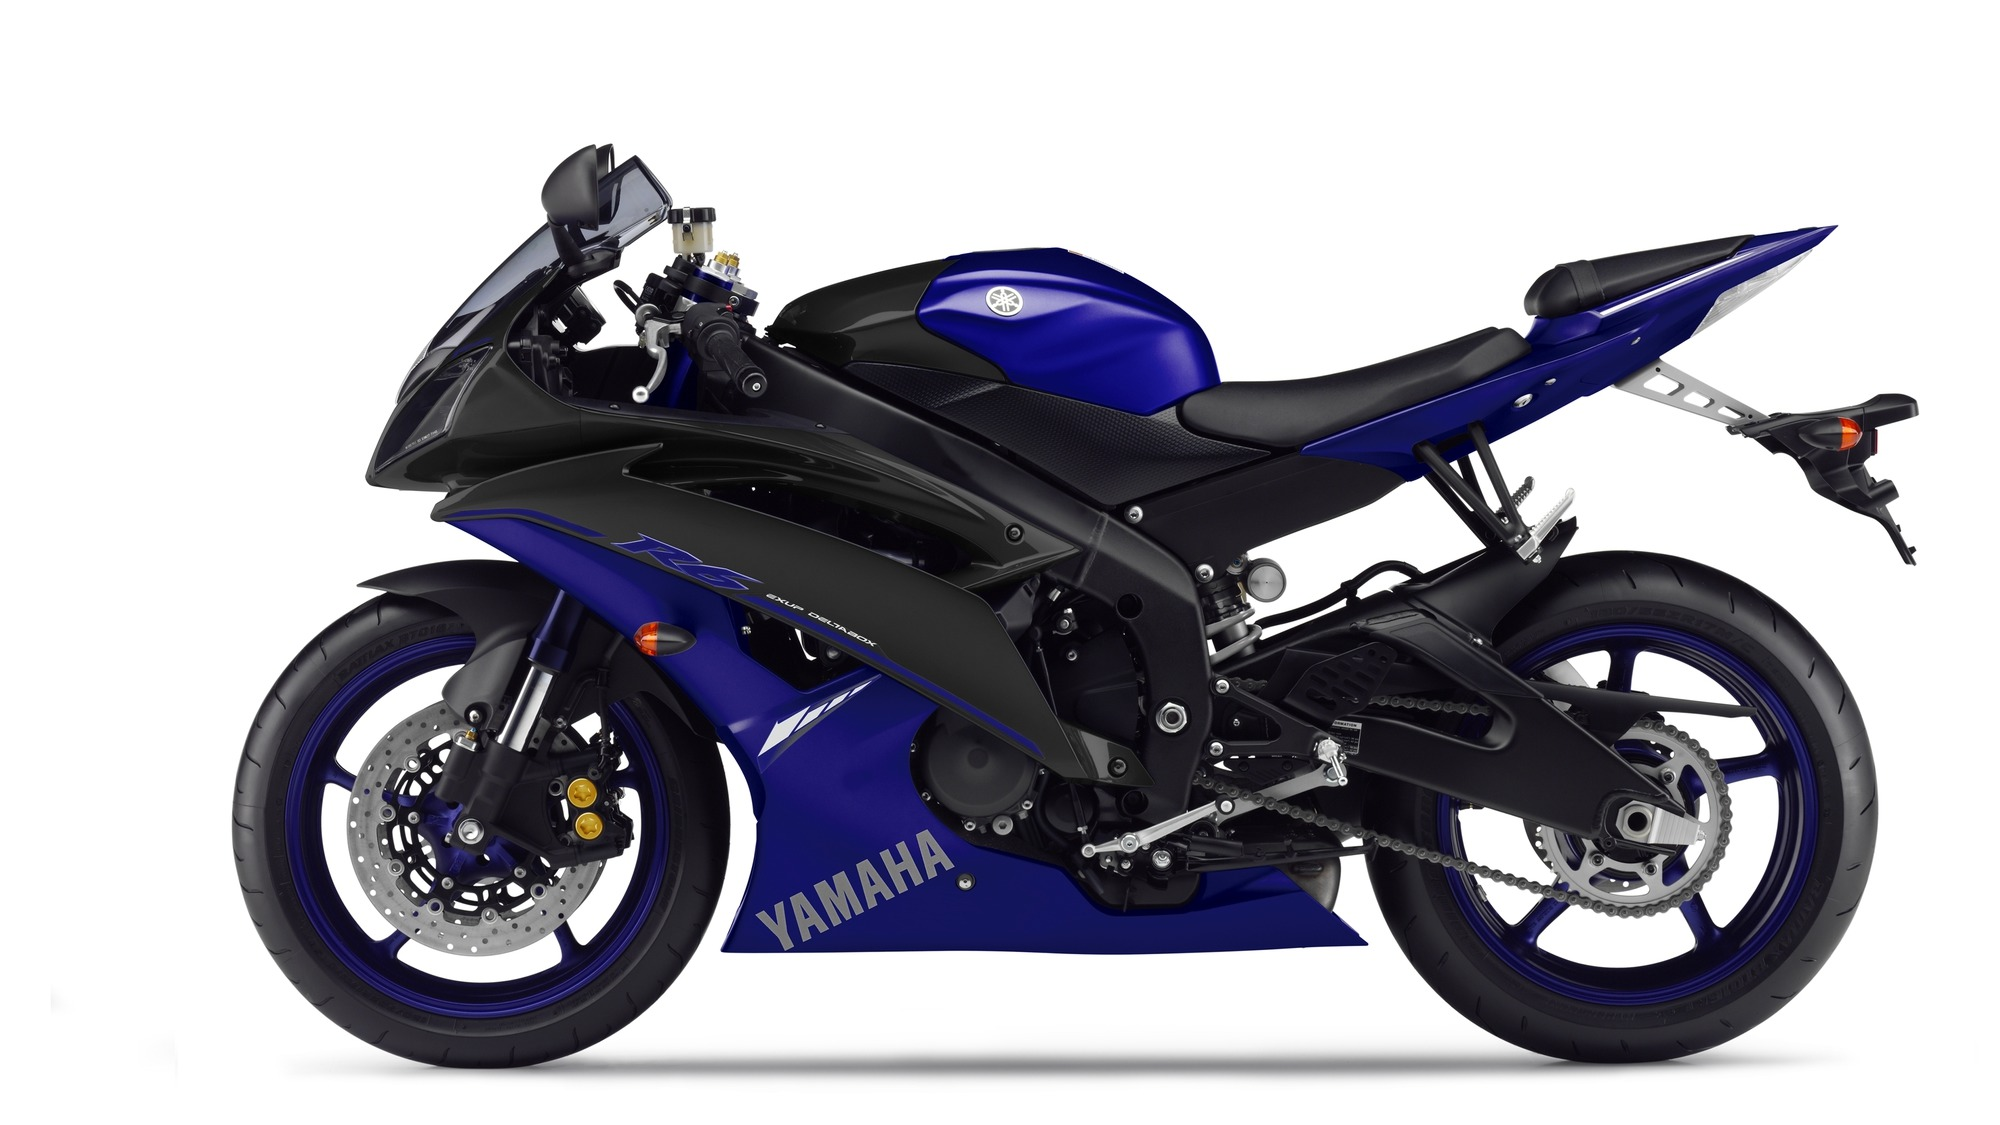 2014 Yamaha R6 Price Car Interior Design